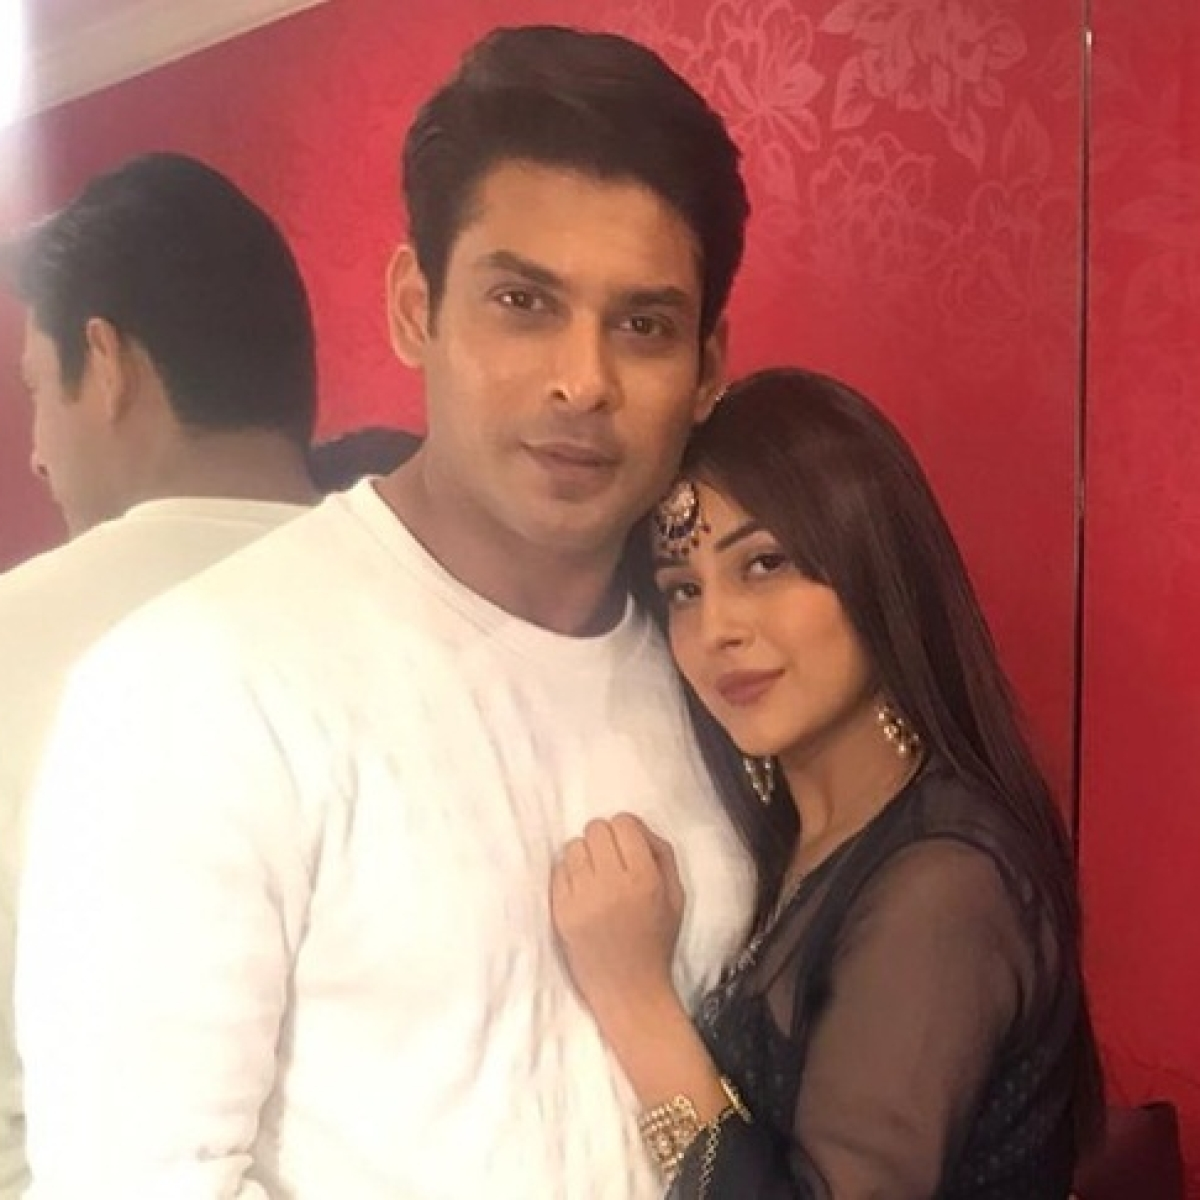 #SidNaaz are back: Shehnaaz Gill, Sidharth Shukla's latest pics and videos are all things love